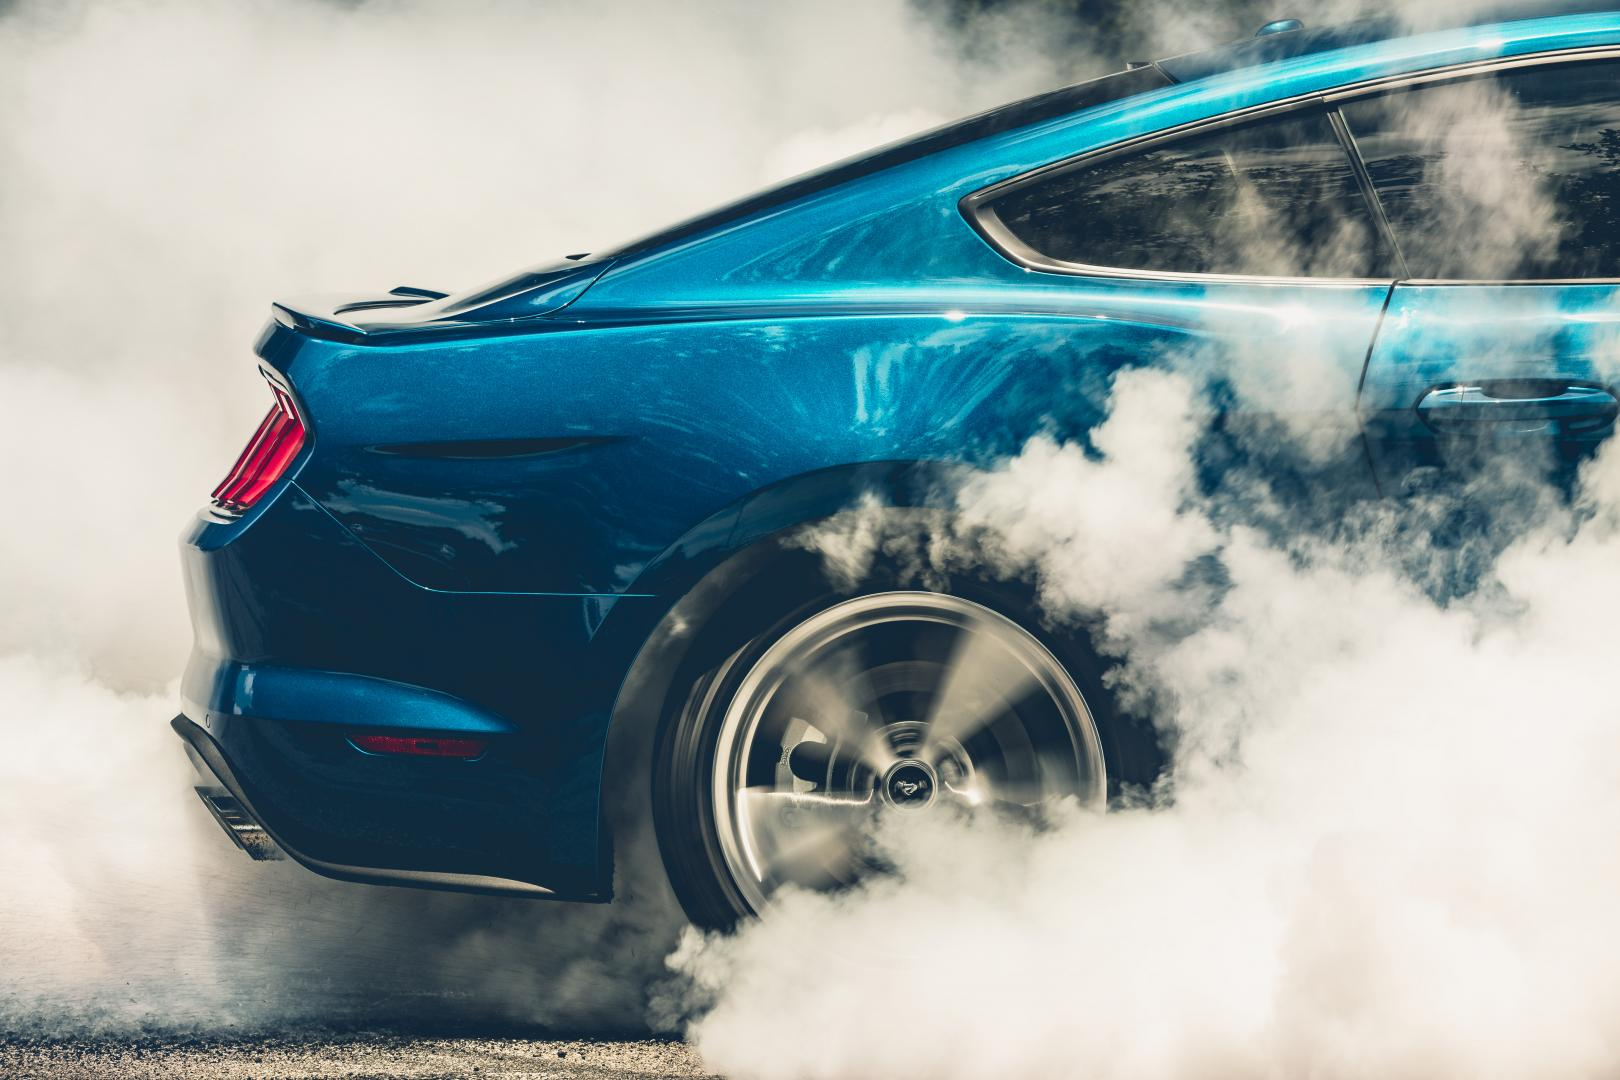 Ford Mustang Kona Blue Performance Pack burnout rook